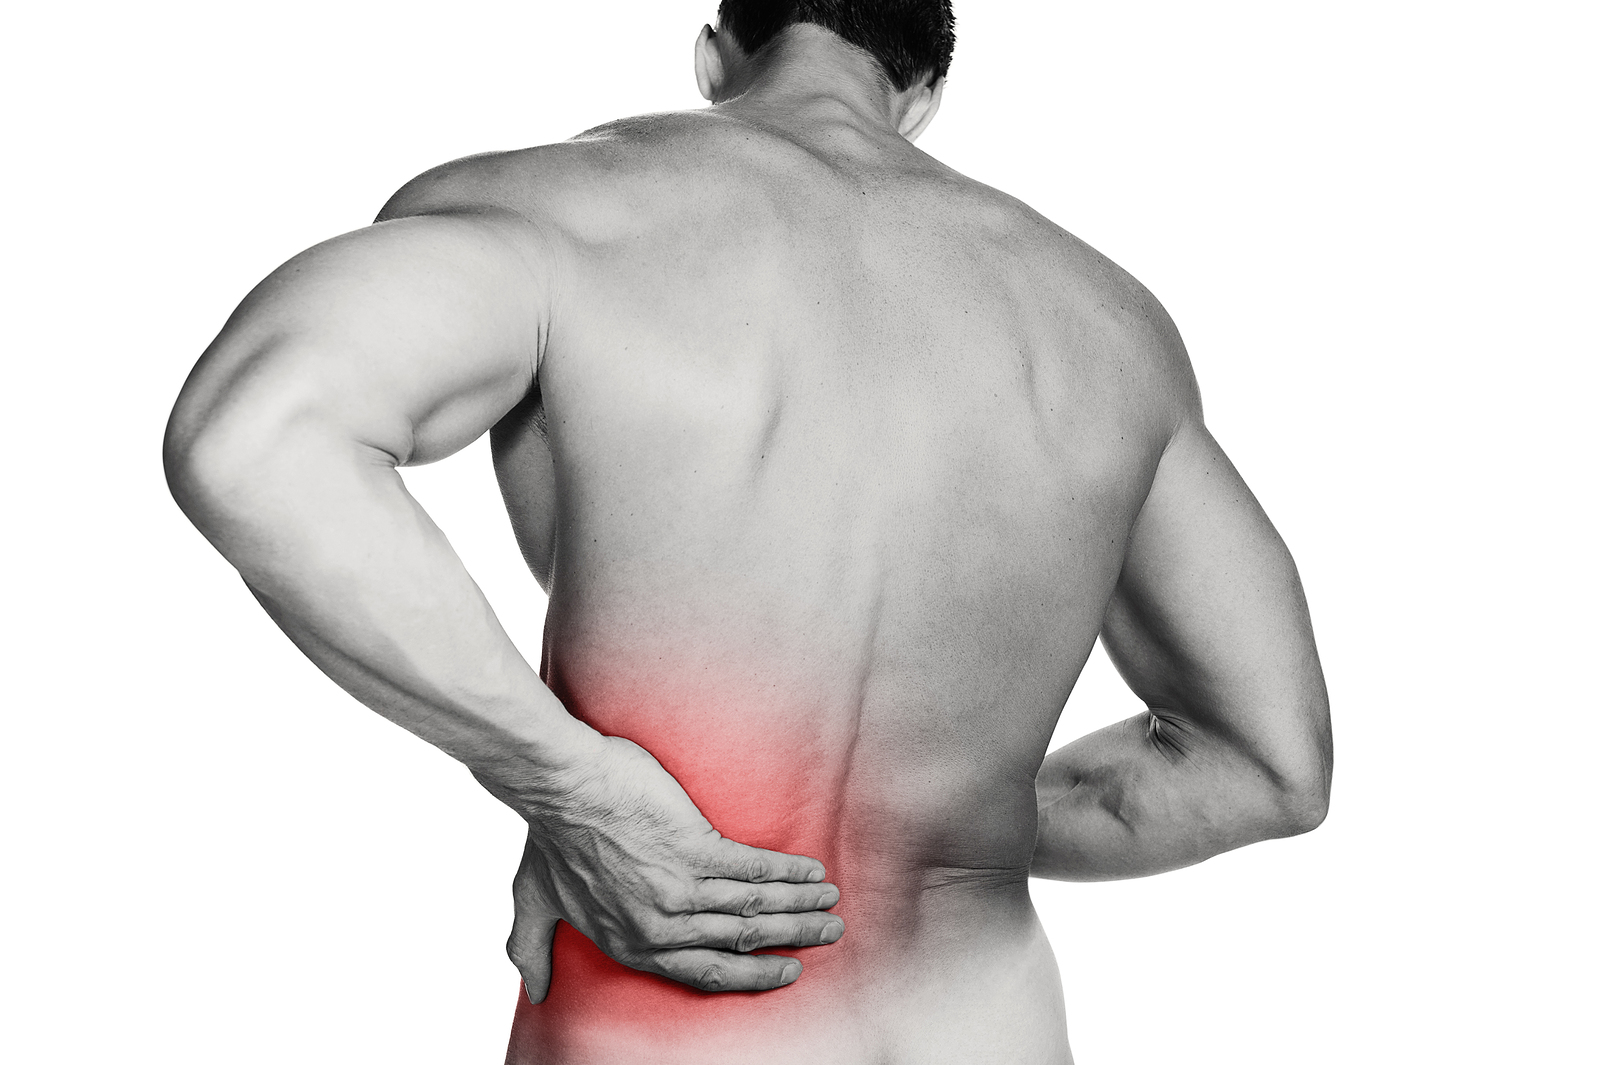 Black and white photo of a muscular man with a backache. Red selective color further illustrates pain. Clipping path included so image can be easily transferred to a different colored background.